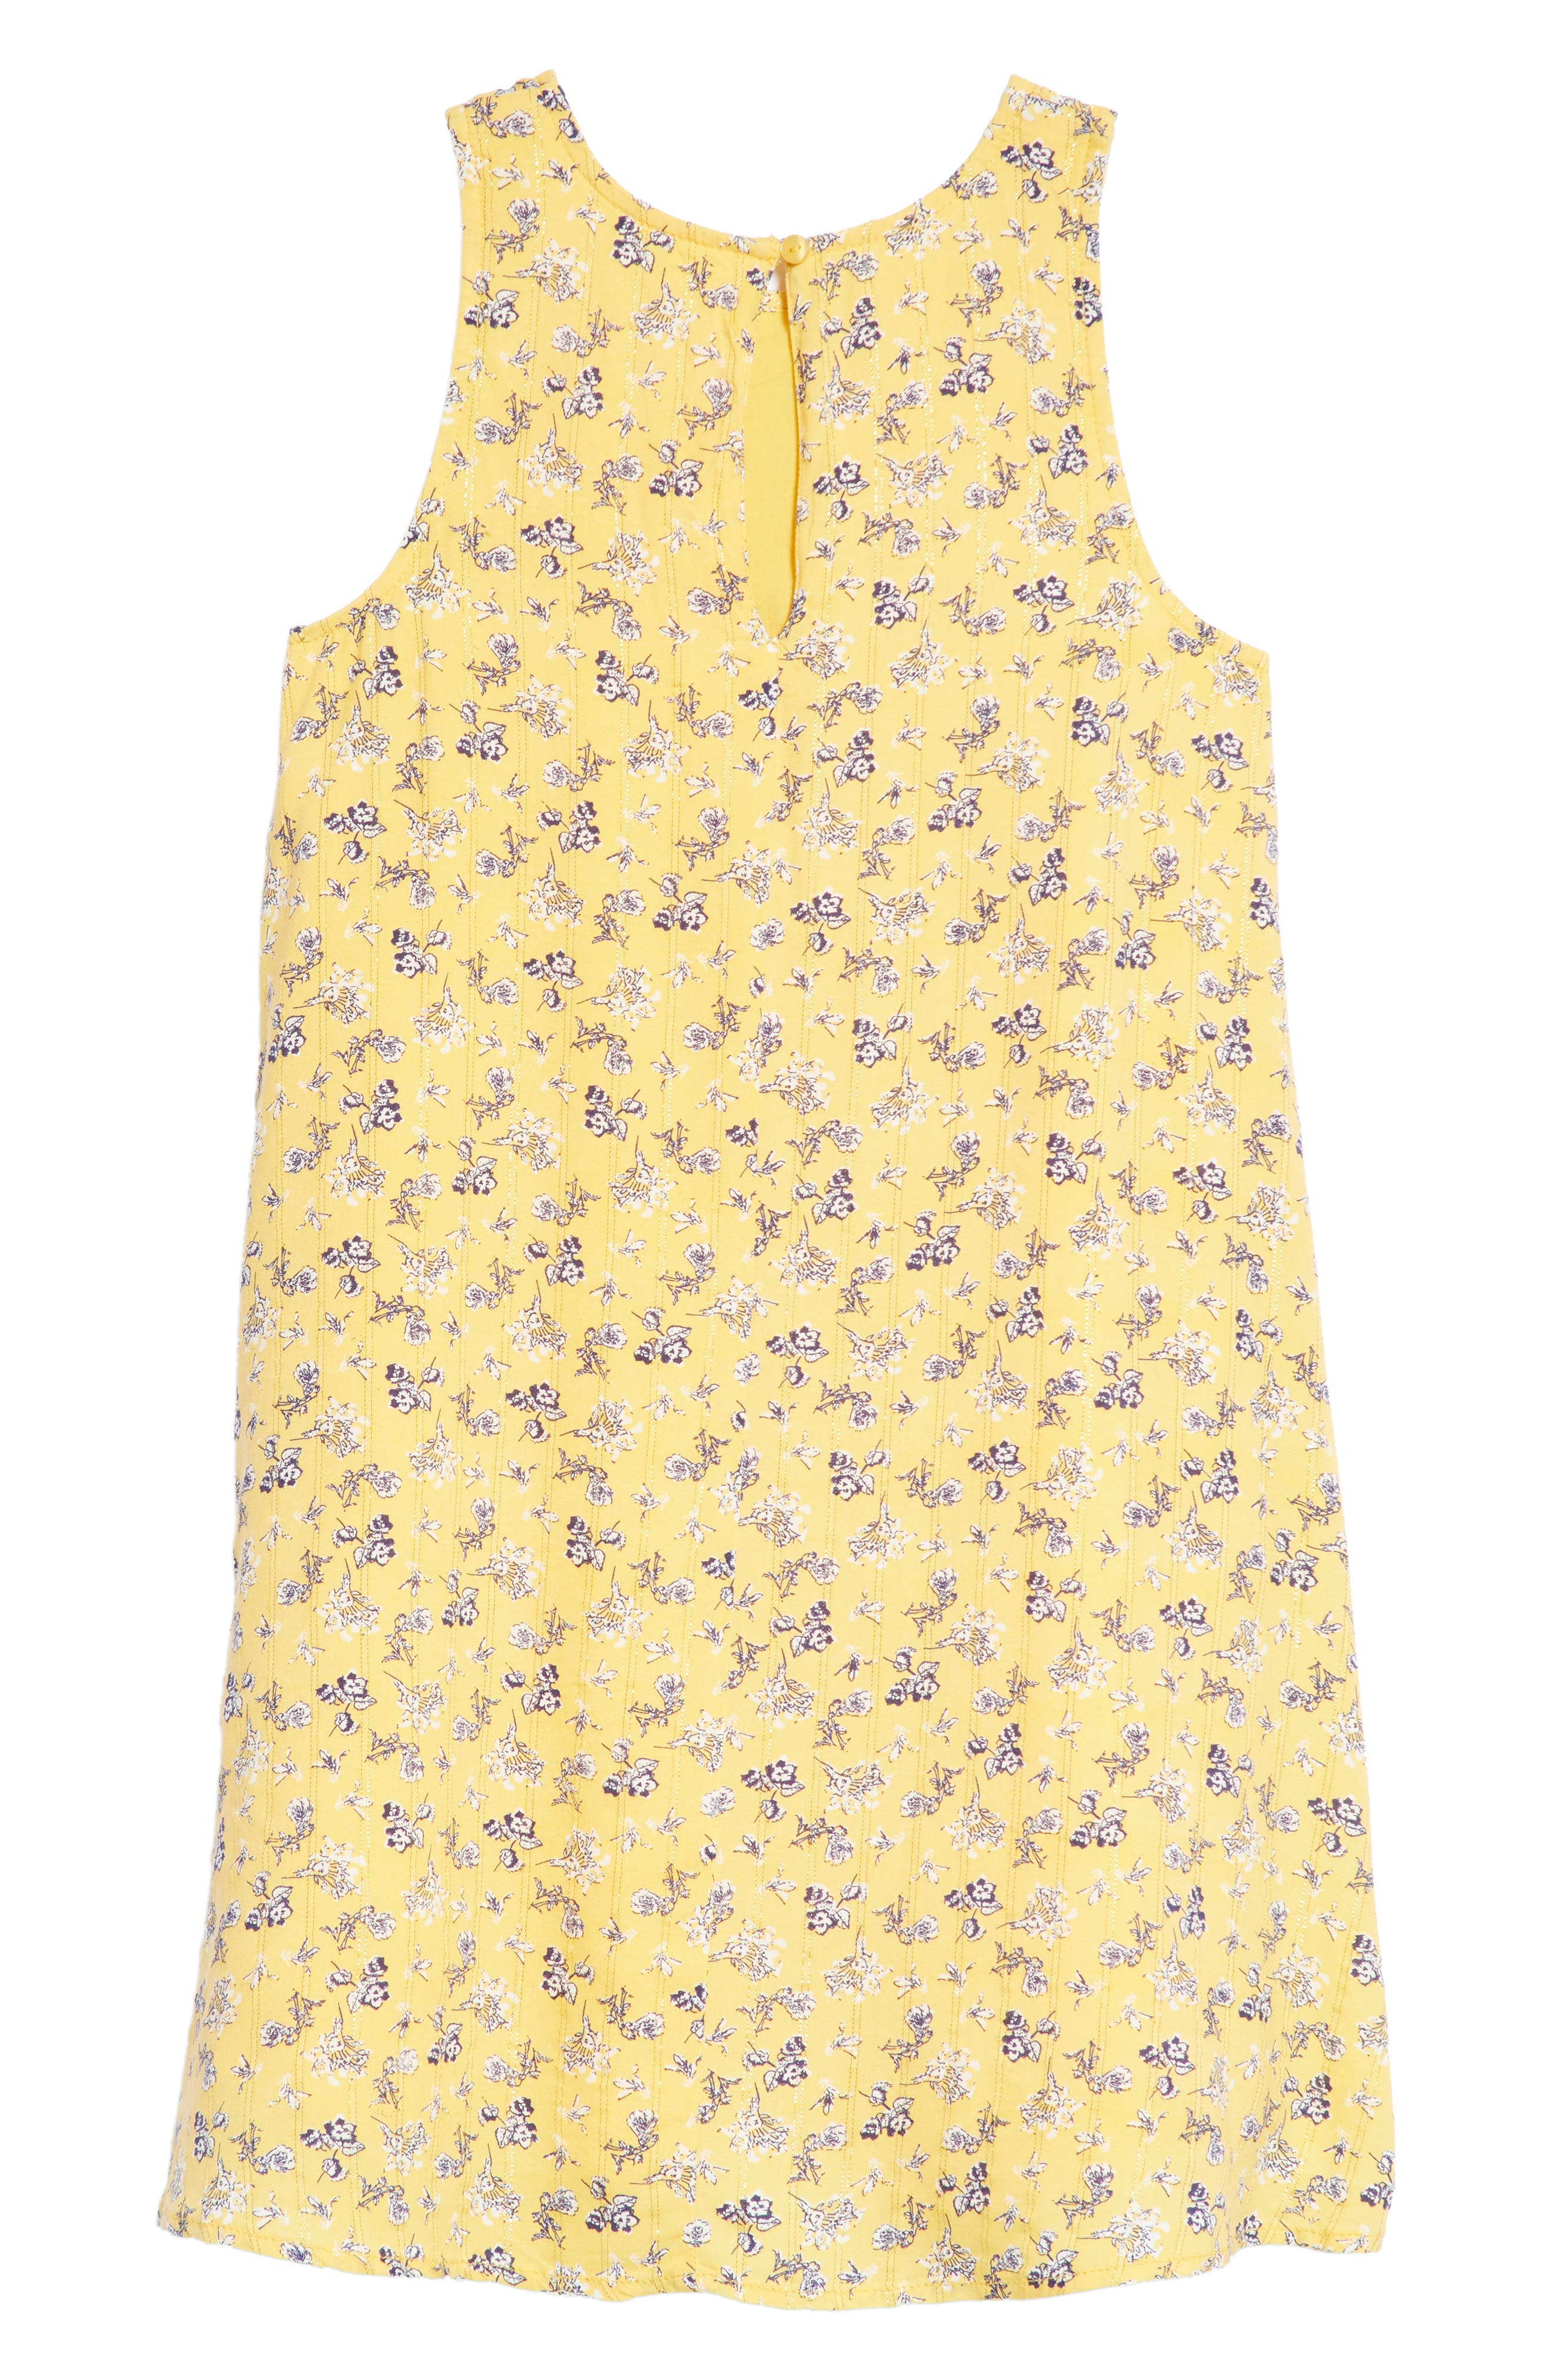 Floral Sleeveless Shift Dress,                             Alternate thumbnail 2, color,                             Yellow Sunset Spring Blooms